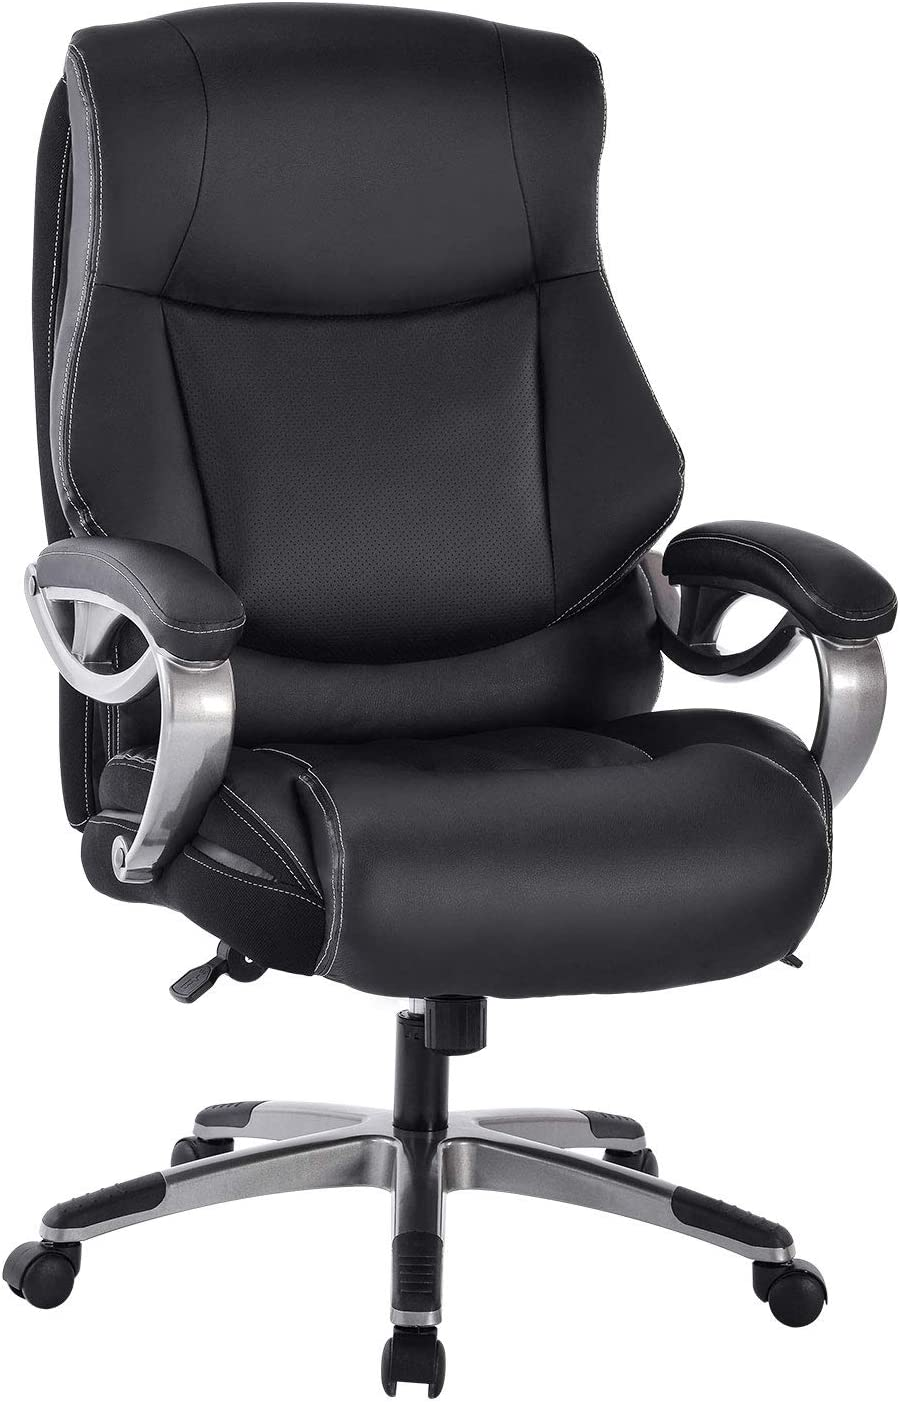 High Back Executive Office Chair - Big Tall Bonded Leather Ergonomic Computer Desk Swivel Chair